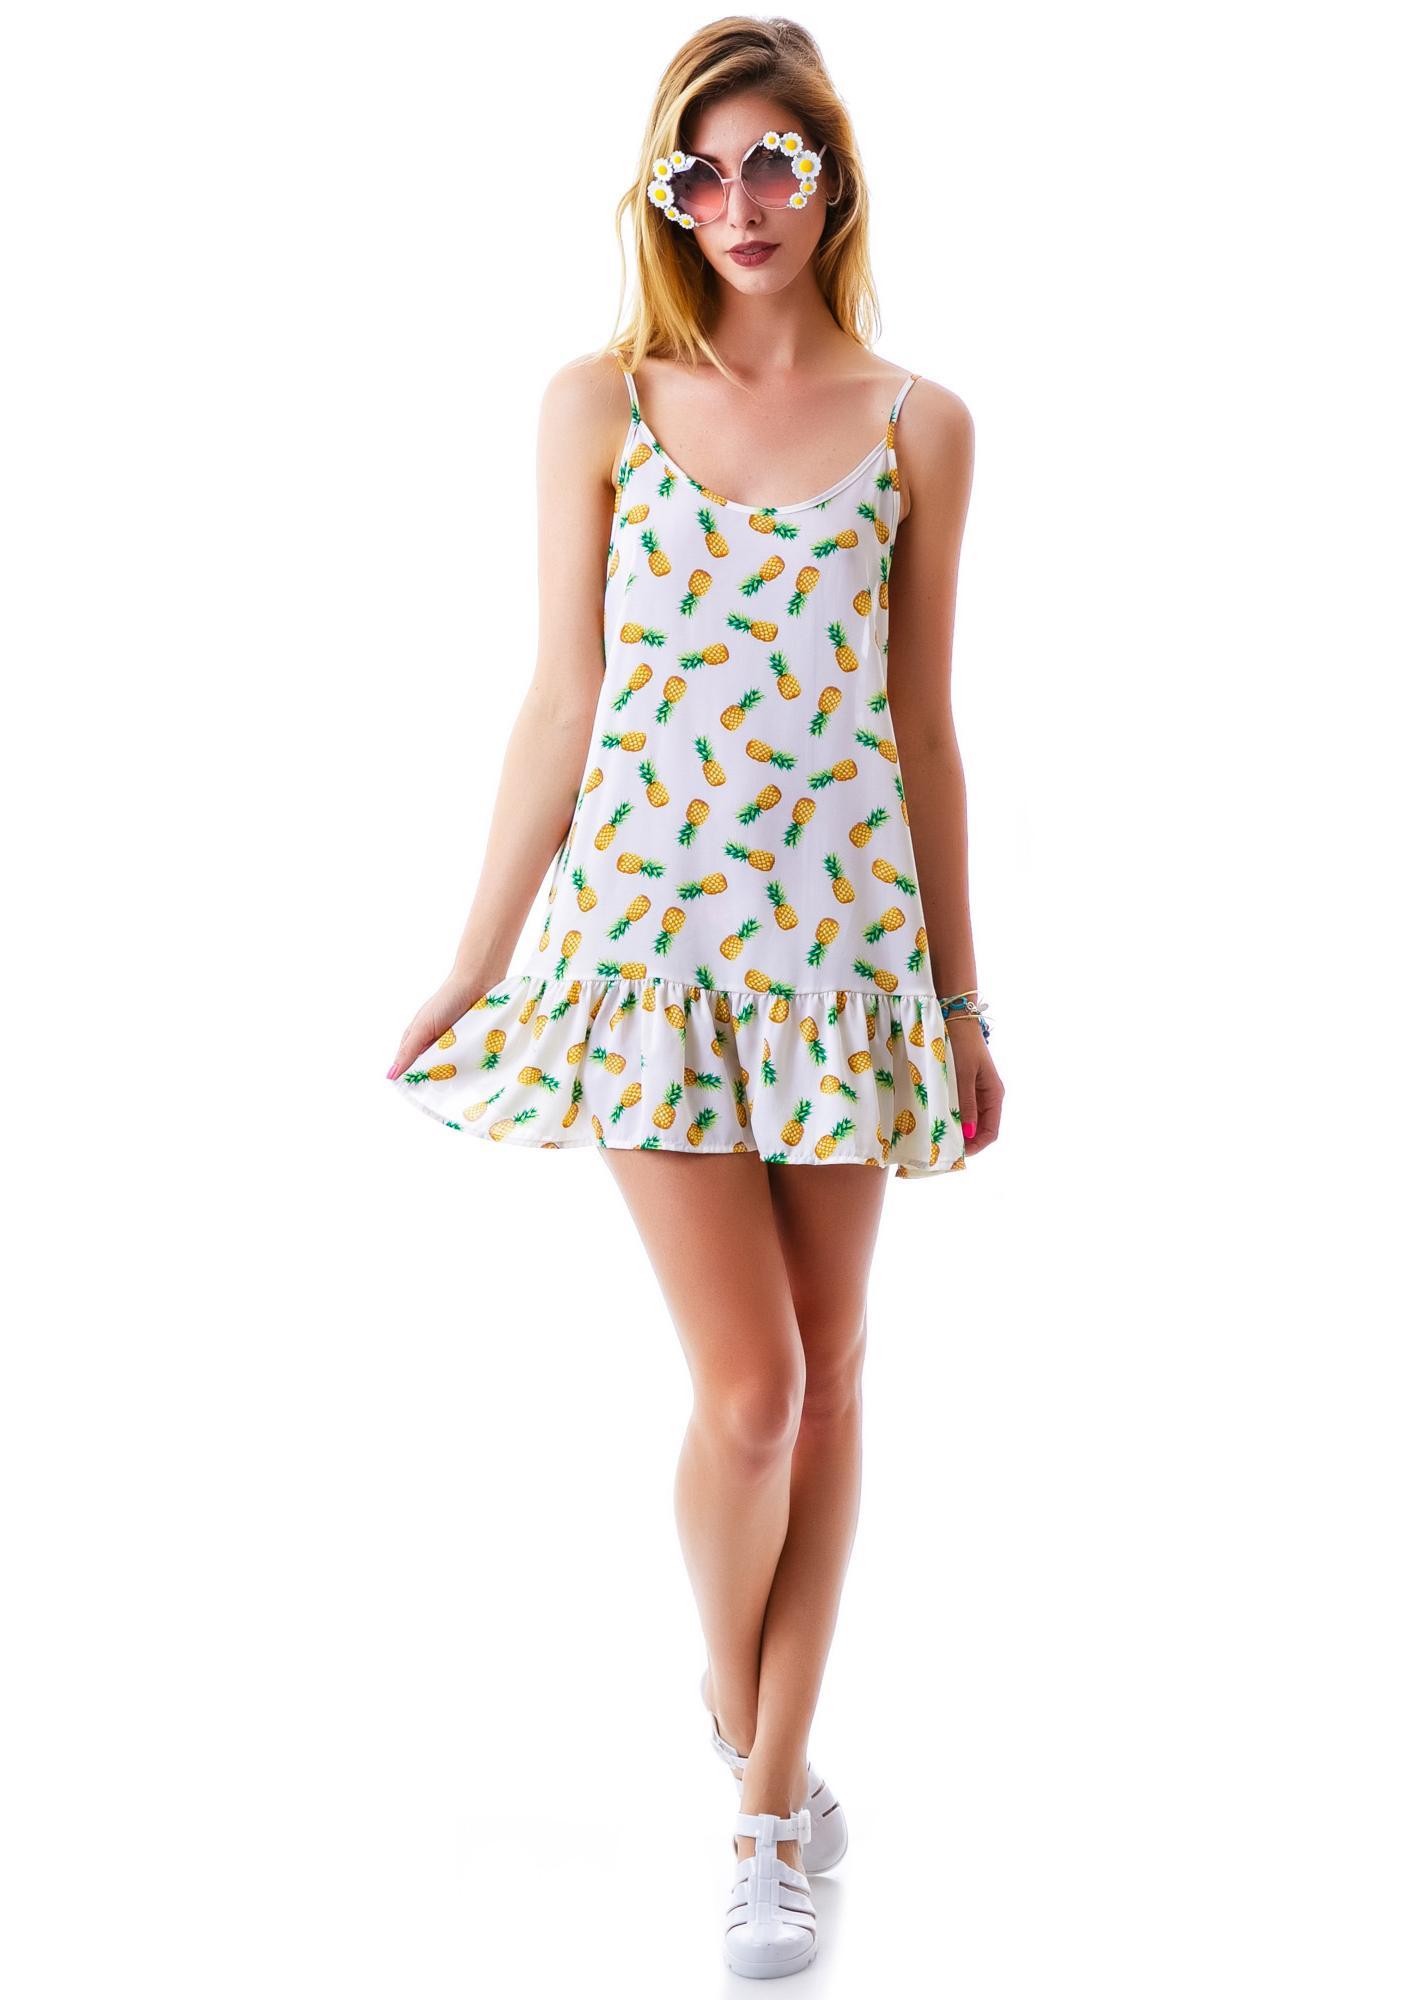 Pinapple Express Ruffle Dress